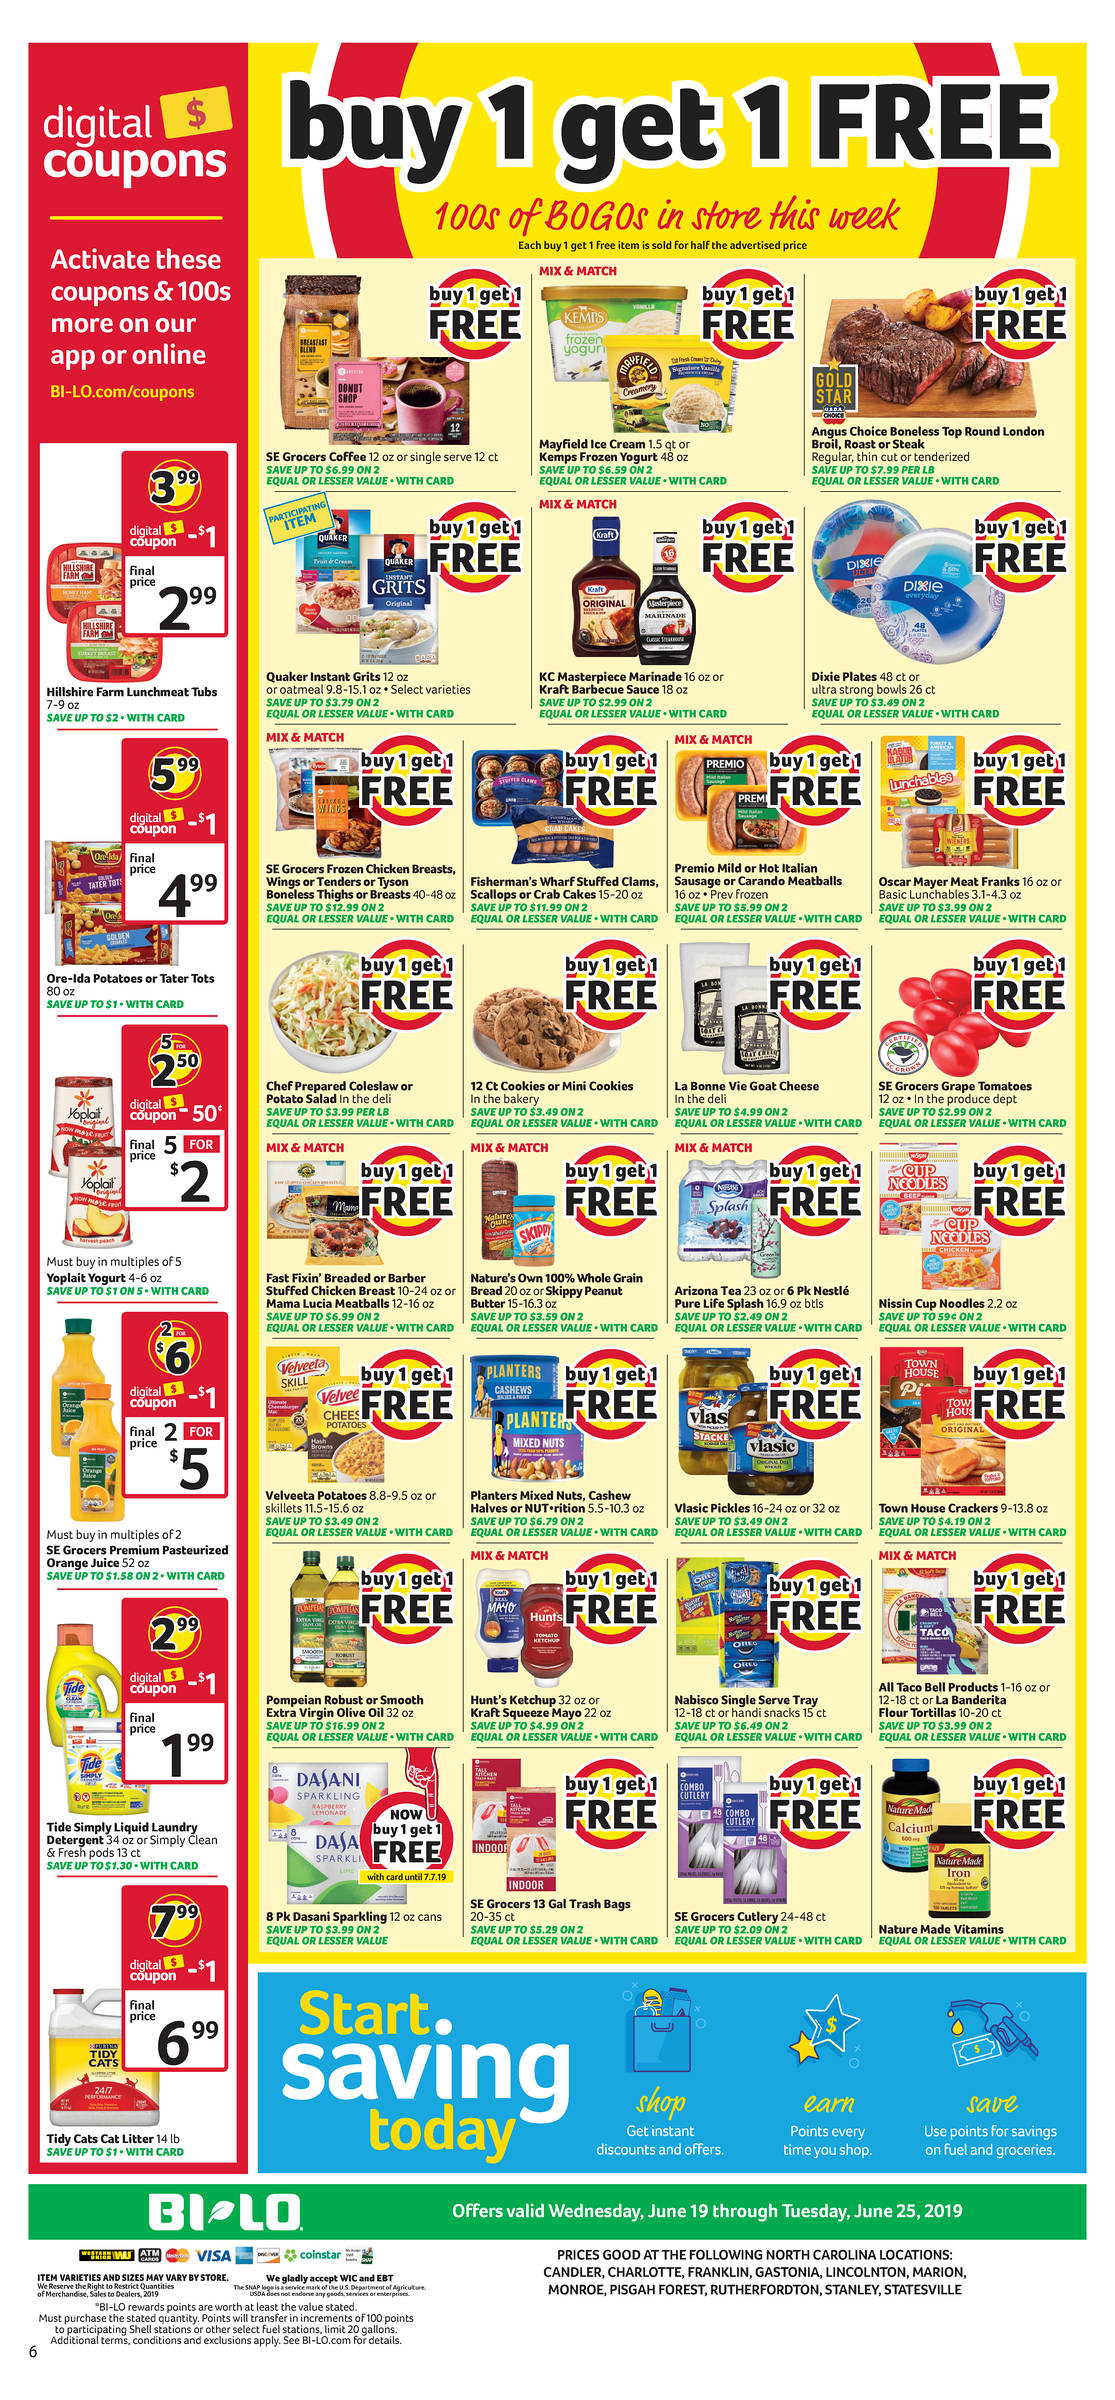 load coupons to bilo card